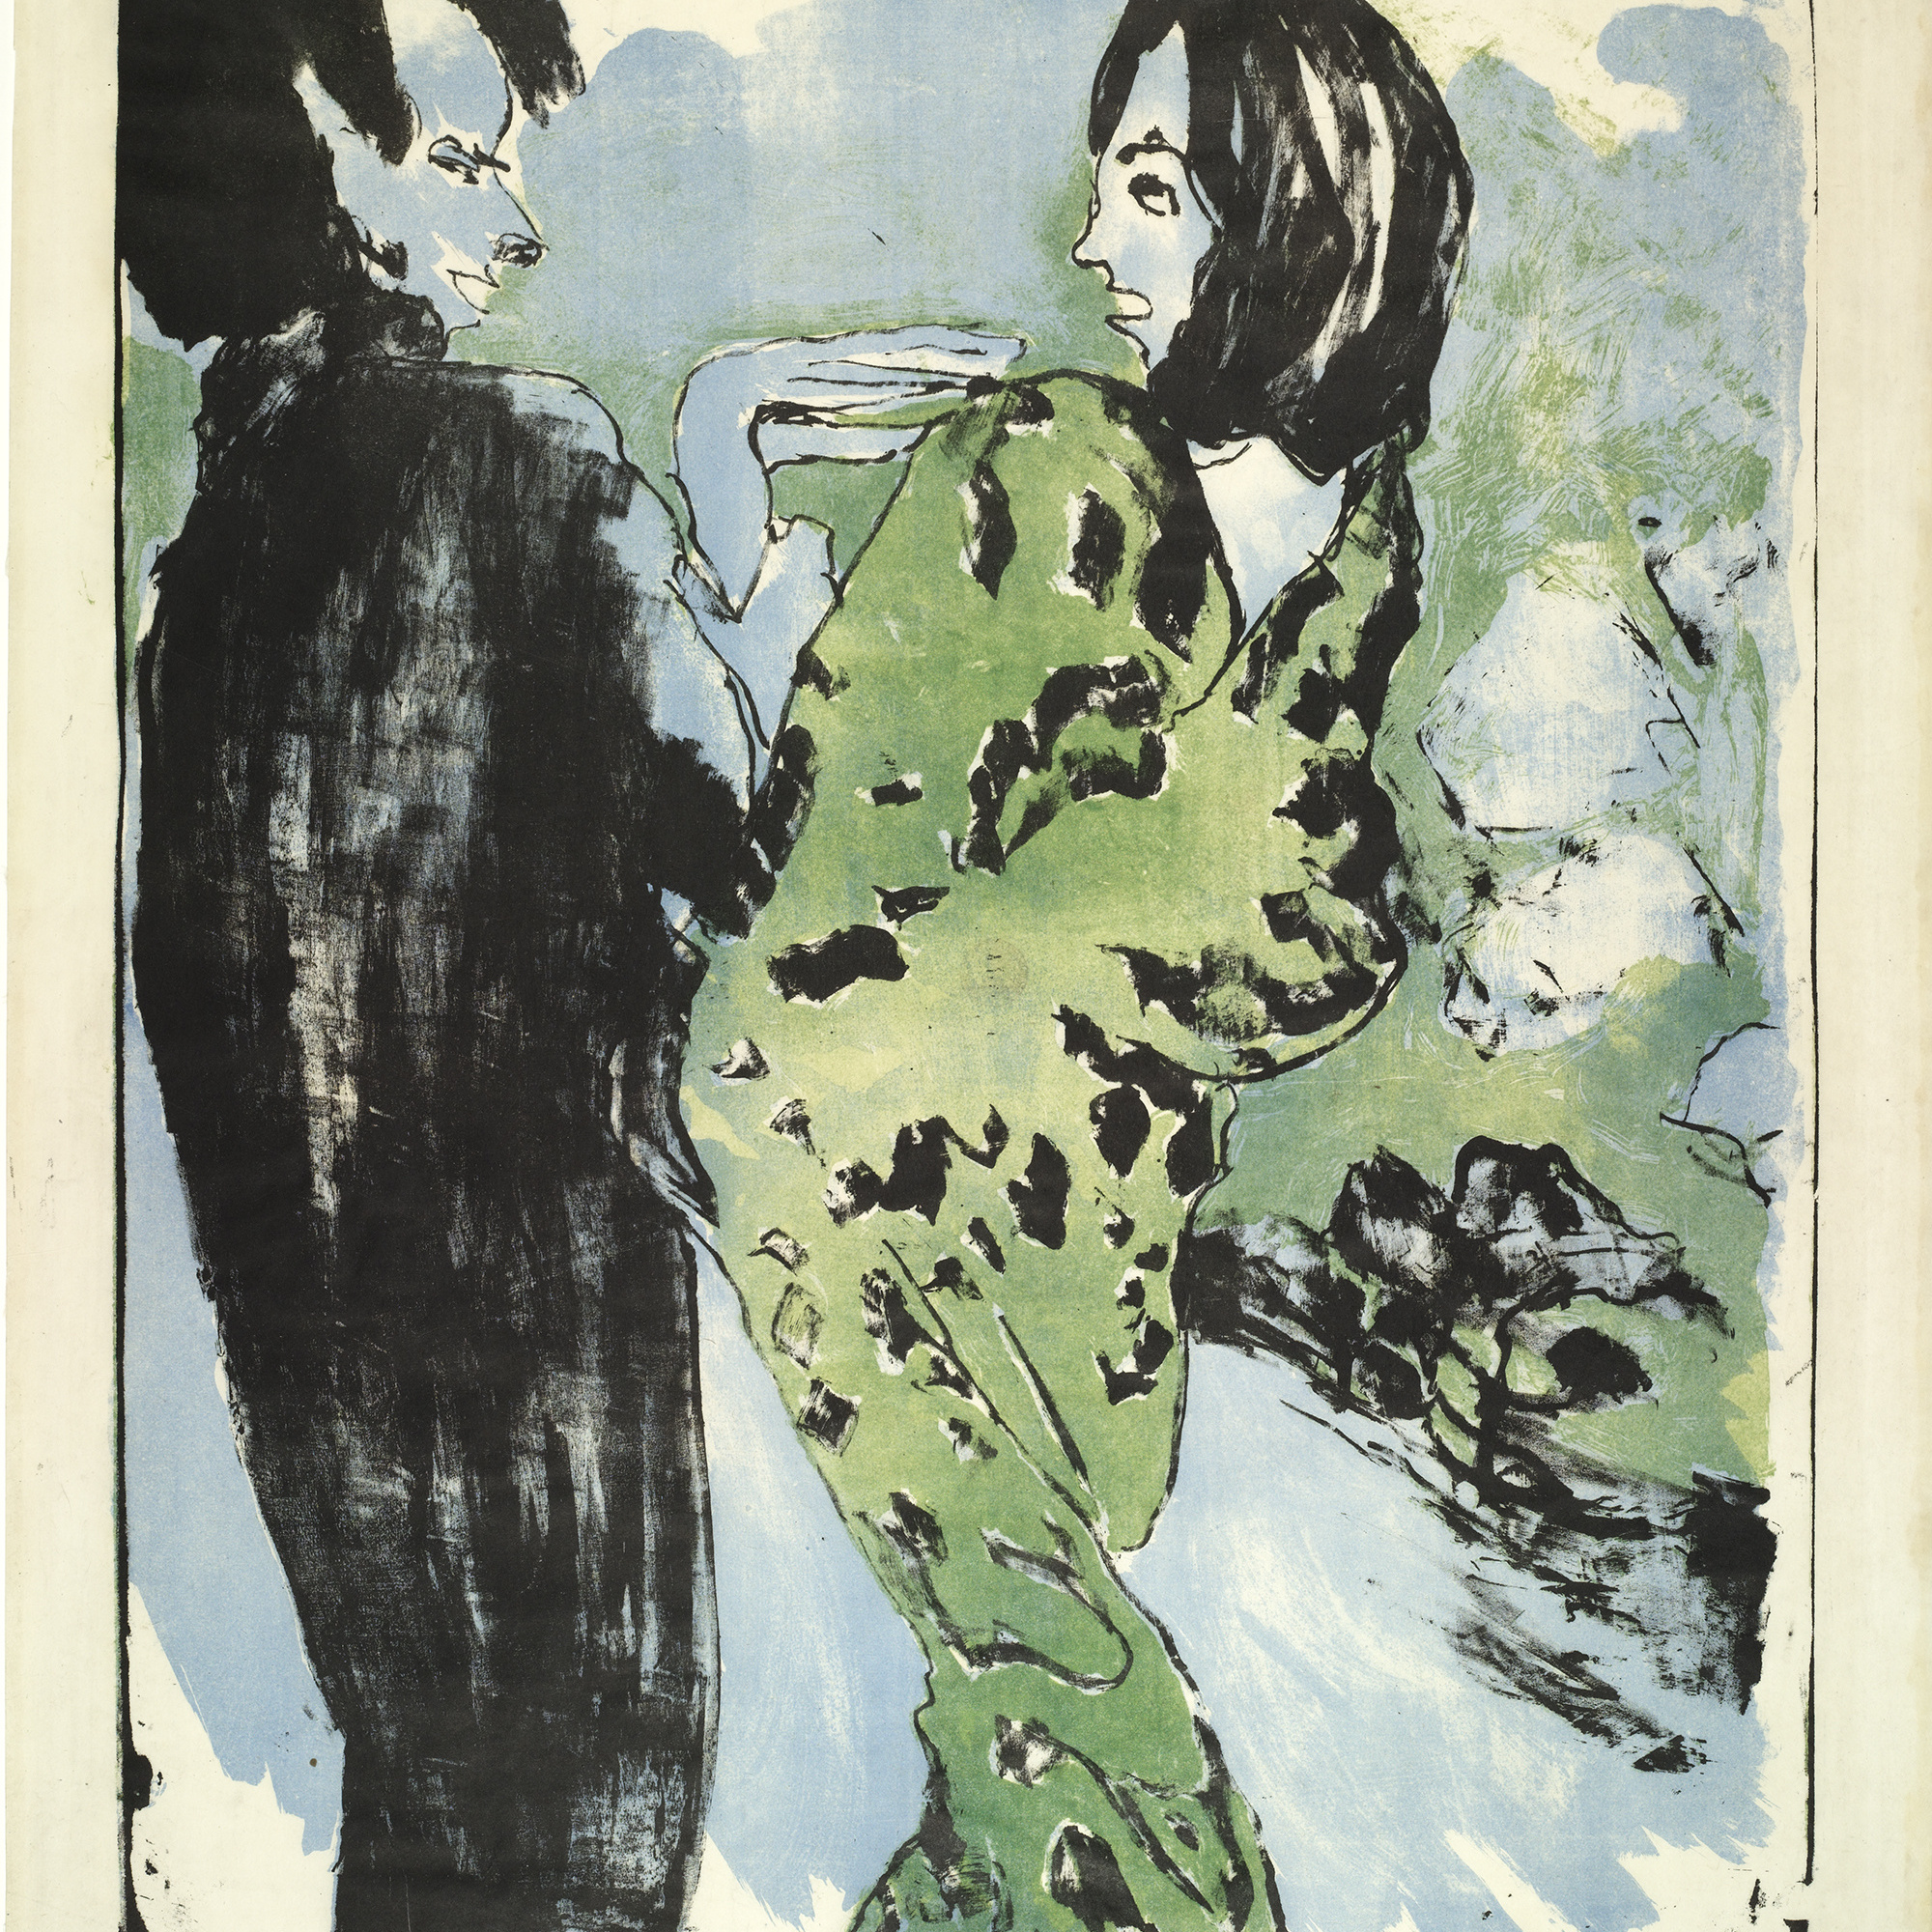 Emil Nolde. Young Couple. 1913. Lithograph, comp.: 24 1/2 × 19 13/16″ (62.2 × 50.3 cm). Publisher: unpublished. Printer: Westphalen, Flensburg, Germany. Edition: 112 in 68 color variations. The Museum of Modern Art. Purchase. © Nolde Stiftung, Seebüll, Germany